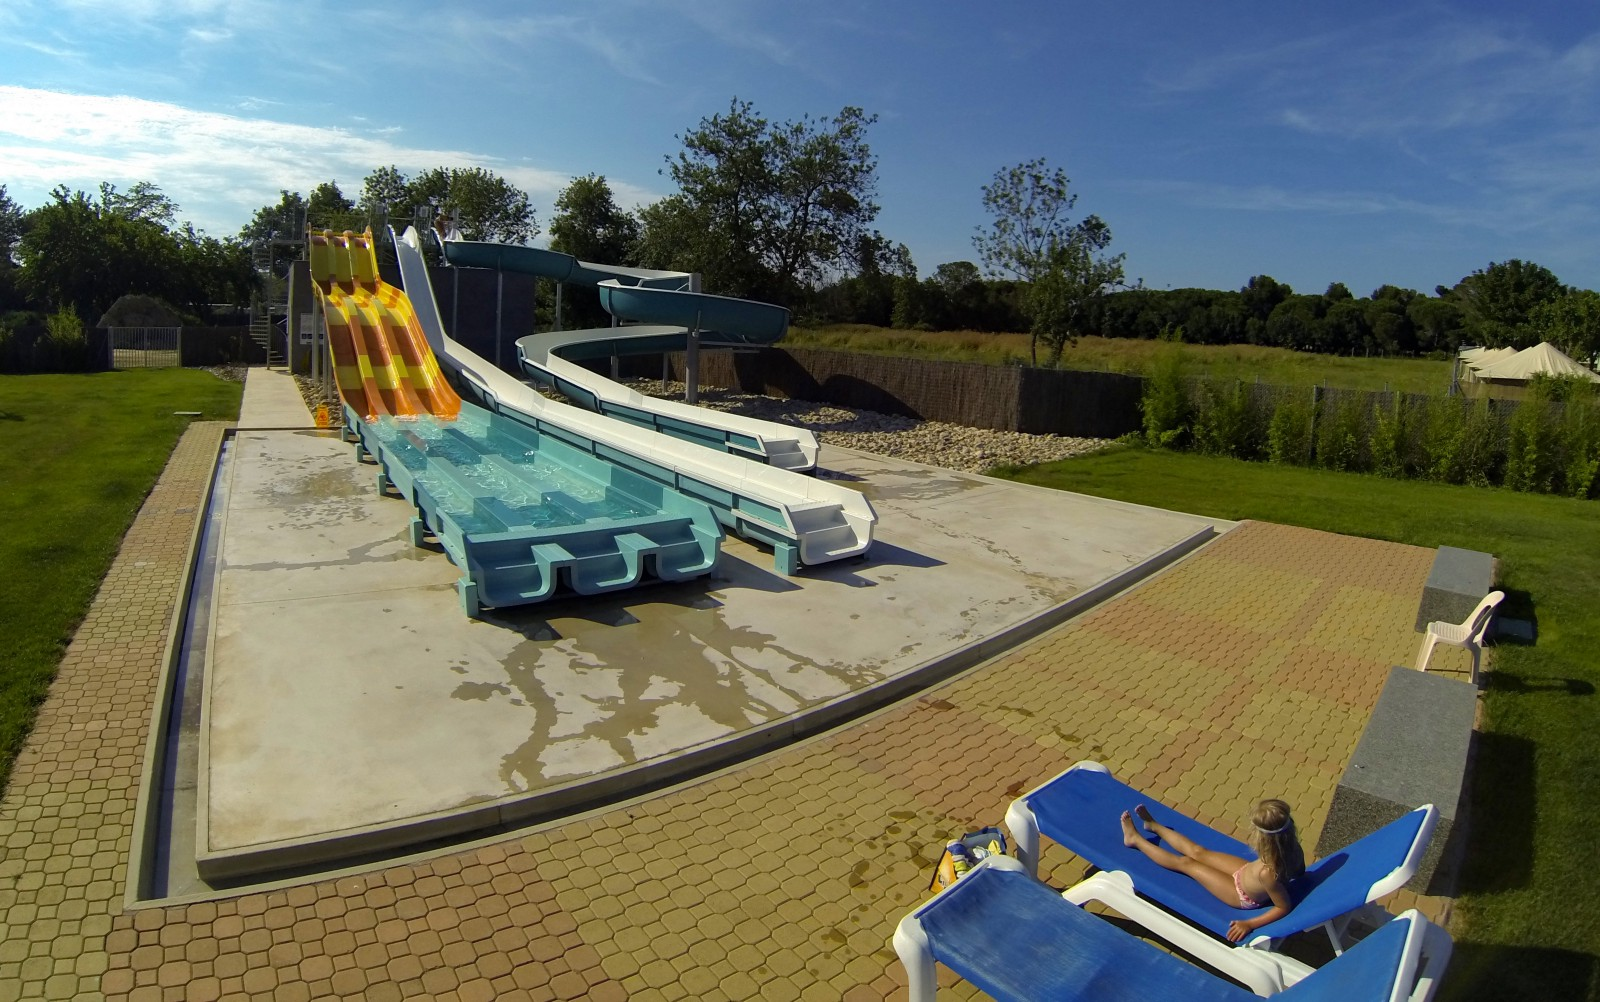 Les Marsouins—a huge campsite with it's own grocery store, pool & slides